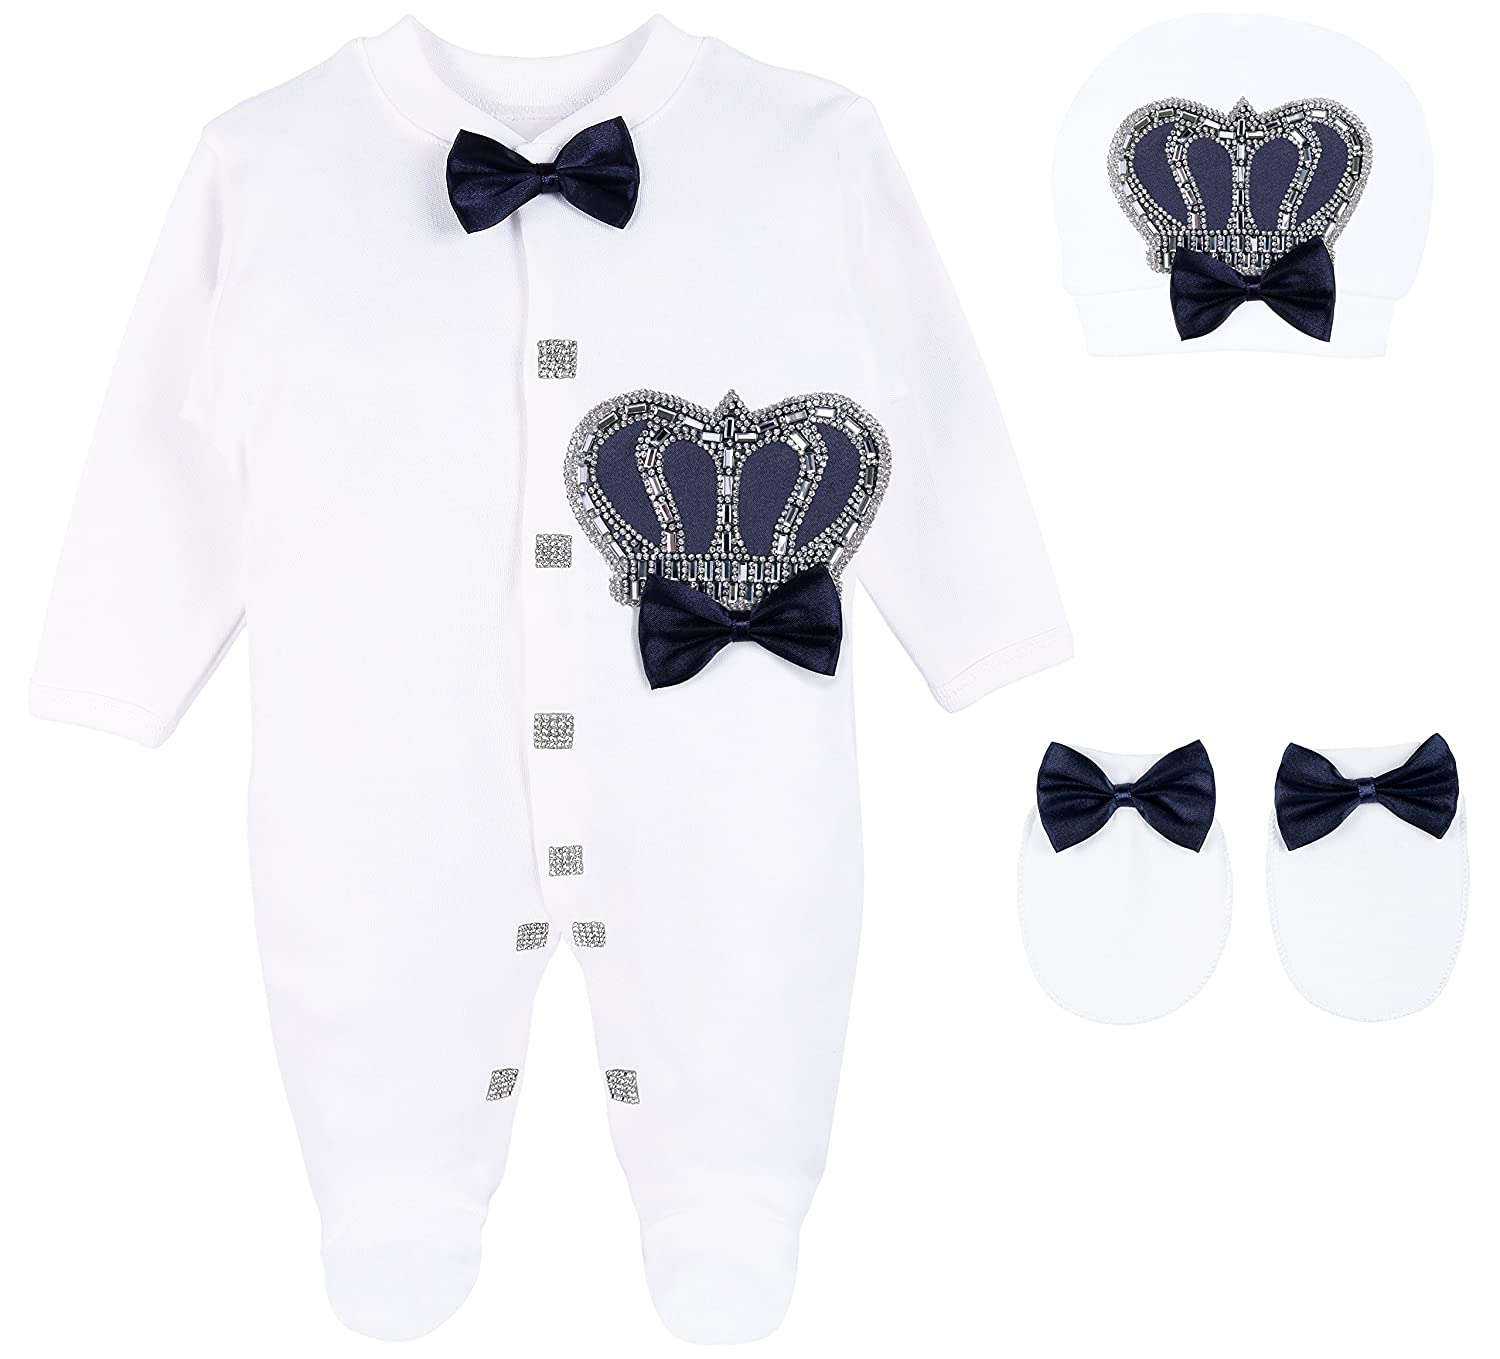 Lilax Baby Boy Newborn Crown Jewels Layette 3 Piece Gift Set 0-3 Months 1455